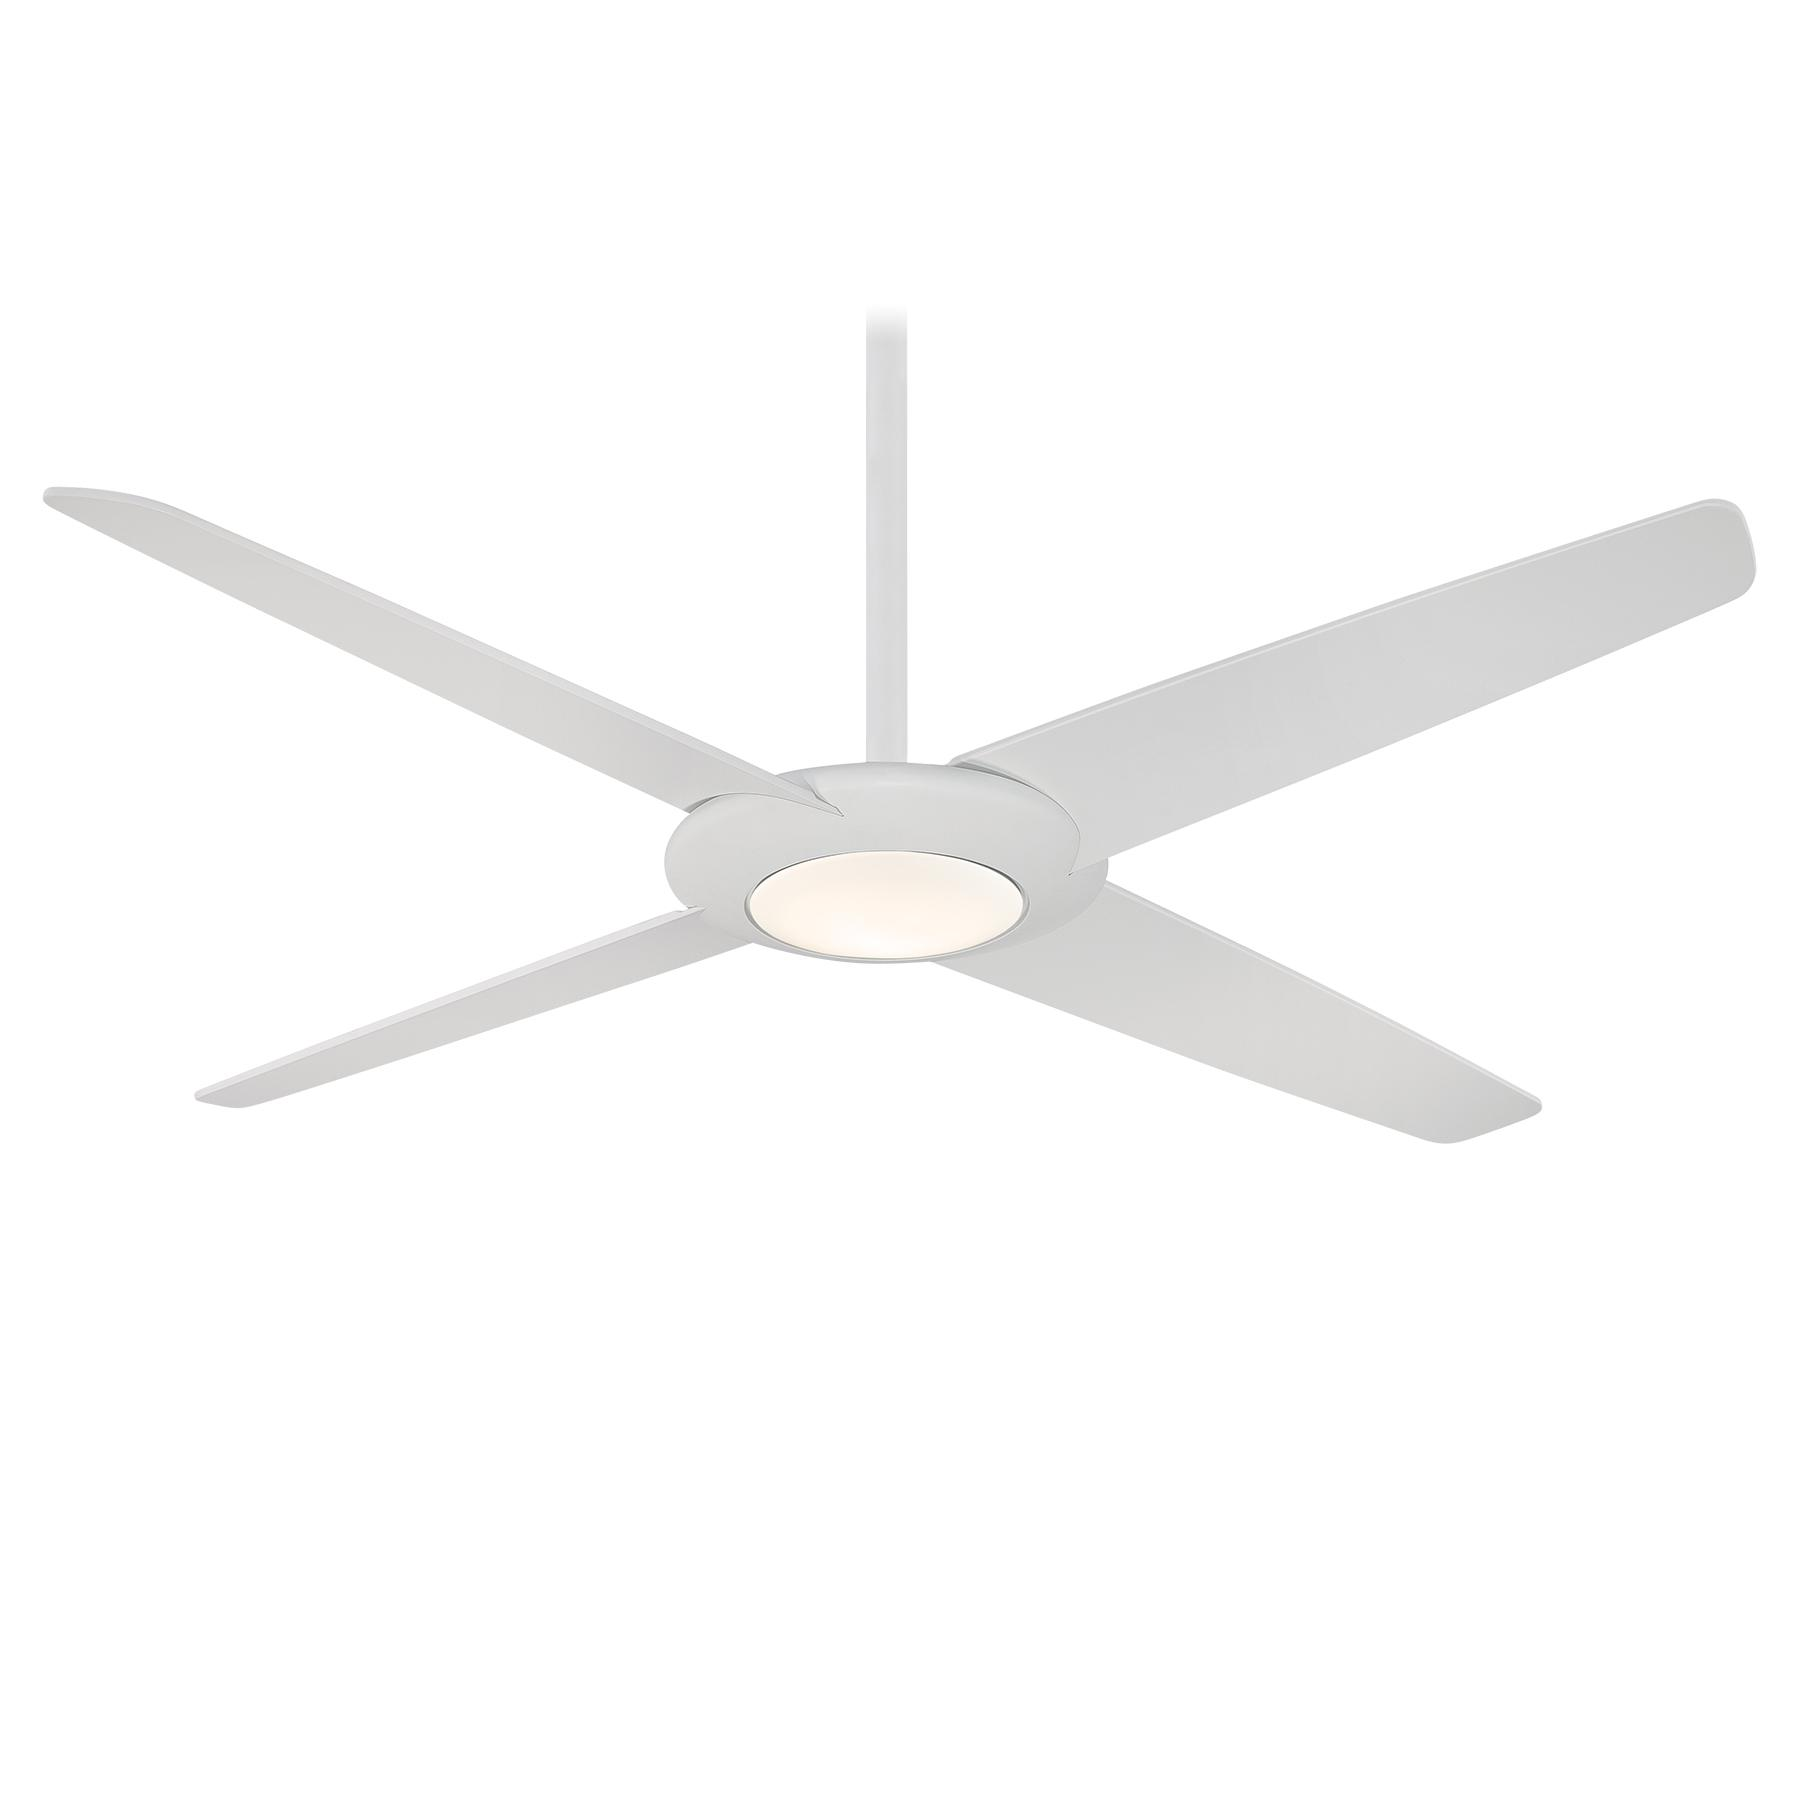 Pancake Xl Ceiling Fan With Light By Minka Aire